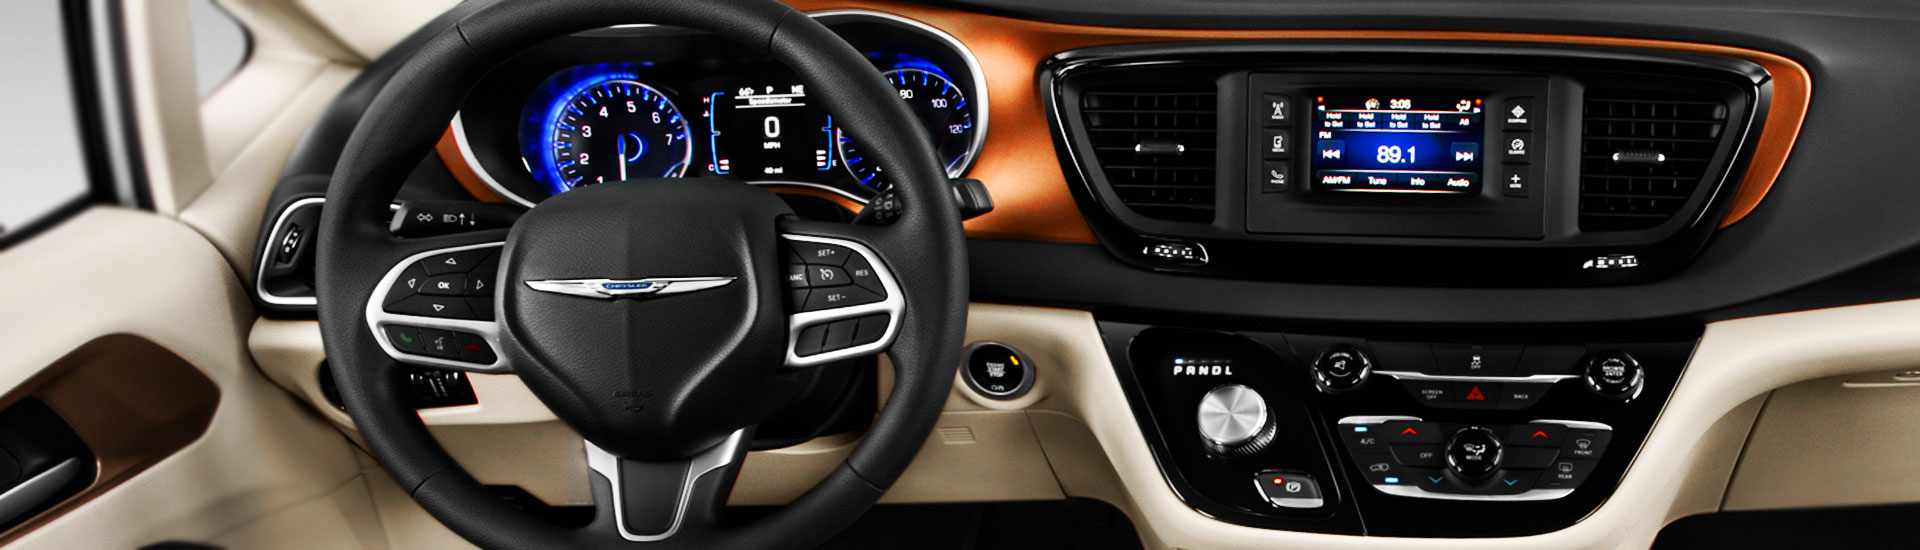 Chrysler Custom Dash Kits